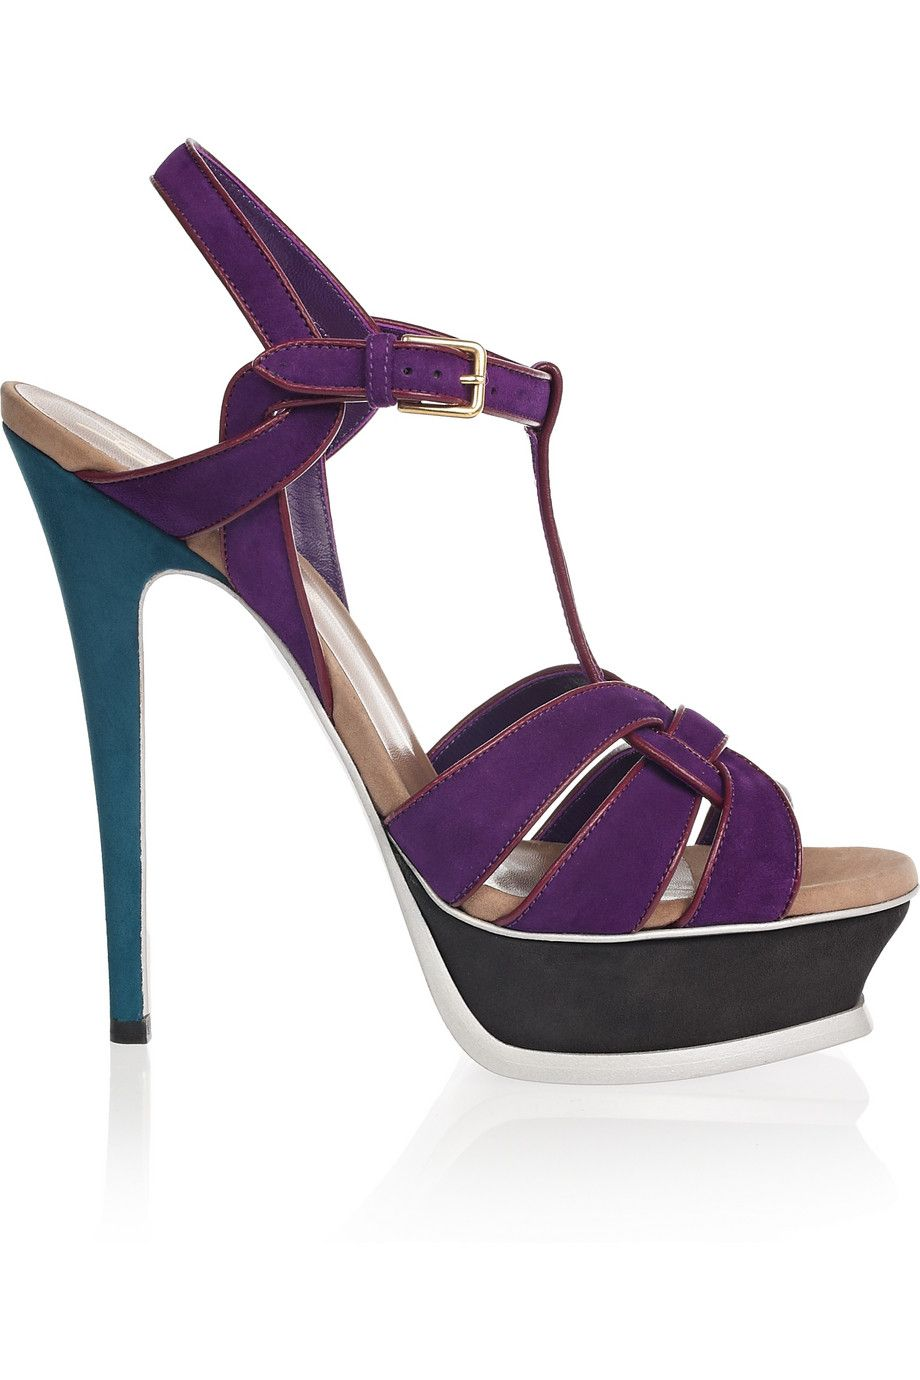 44ed90535be YSL Tribute sandals! I have a black leather knock-off version of these, but  nothing's as good as the real thing, especially if the real thing is teal  and ...